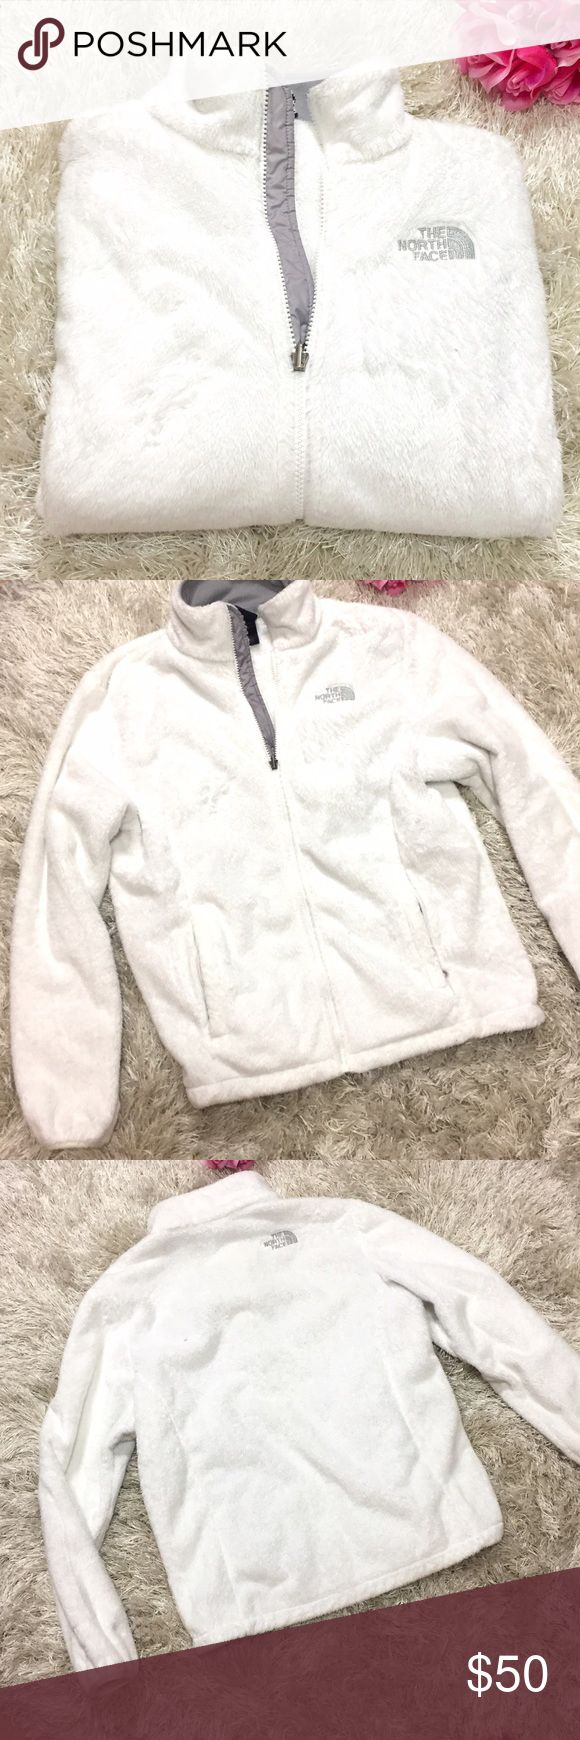 North Face Fuzzy Jacket White High-pile fleece jacket crafted with a tailored waist. Cozy oversized collar, and comfortable stretch cuffs and hem. Relaxed fit. Two secure zip hand pockets. Size large. Feel free to ask questions!  The North Face Jackets & Coats